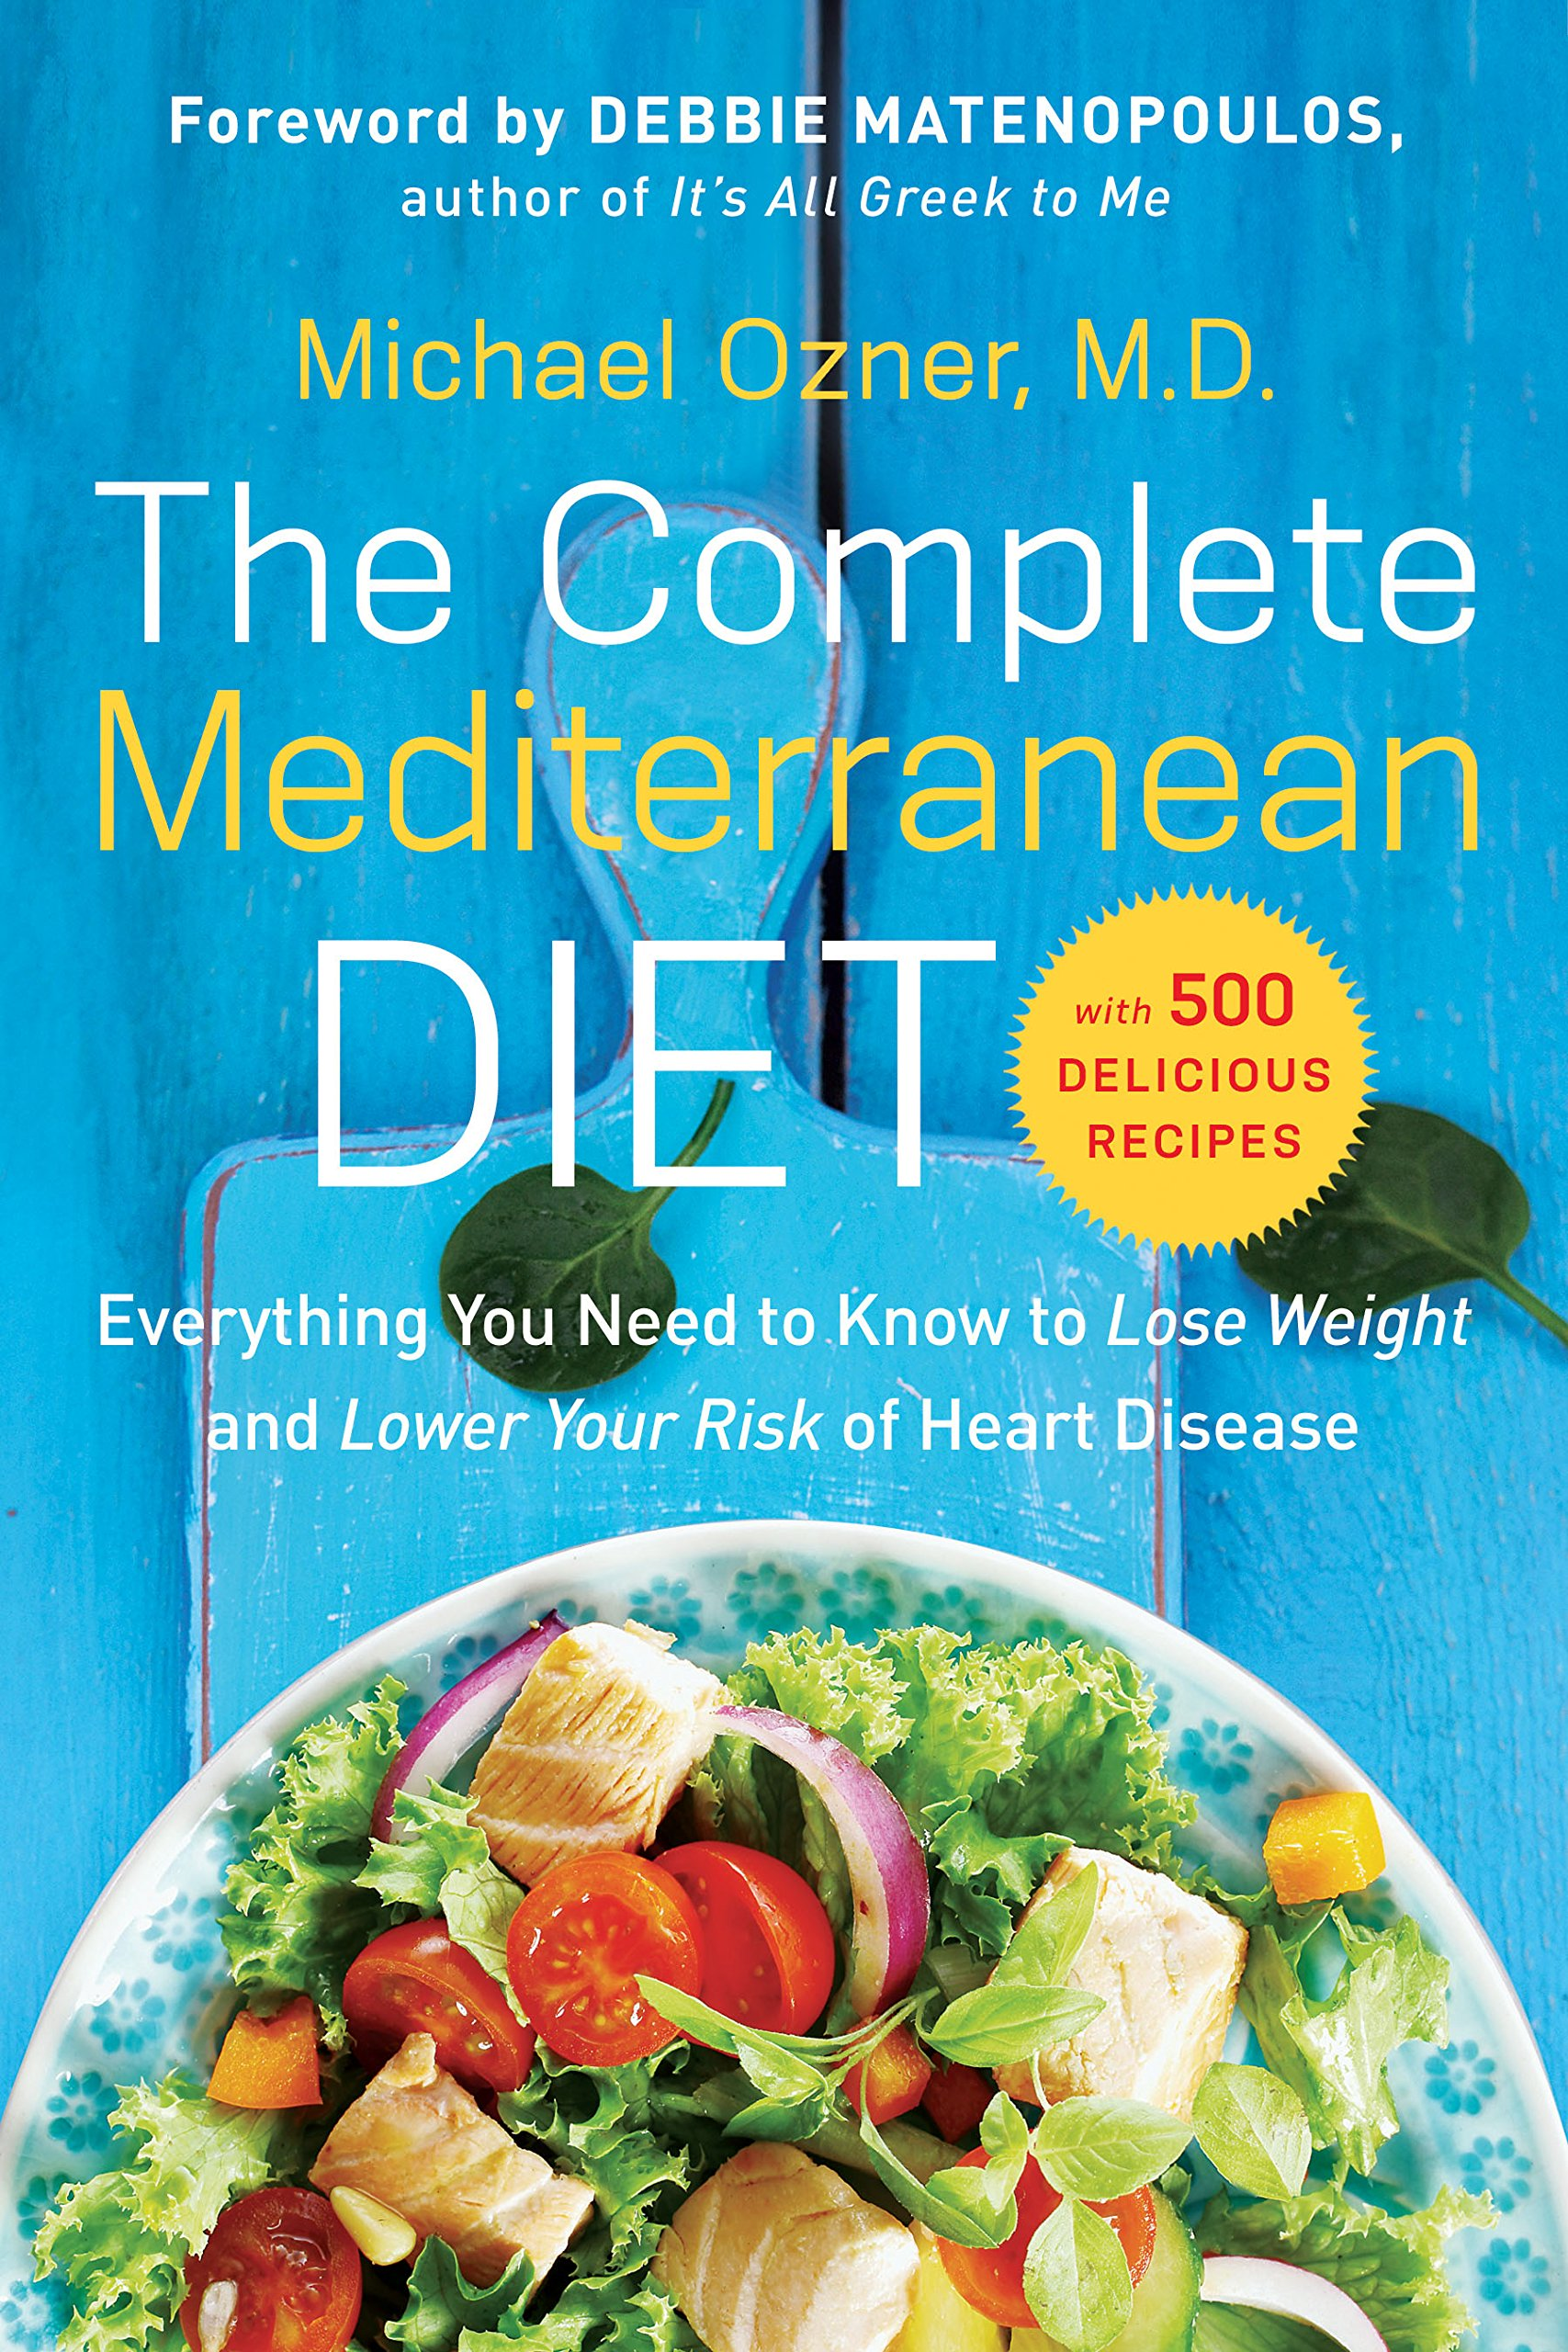 south beach diet vs mediterranean diet